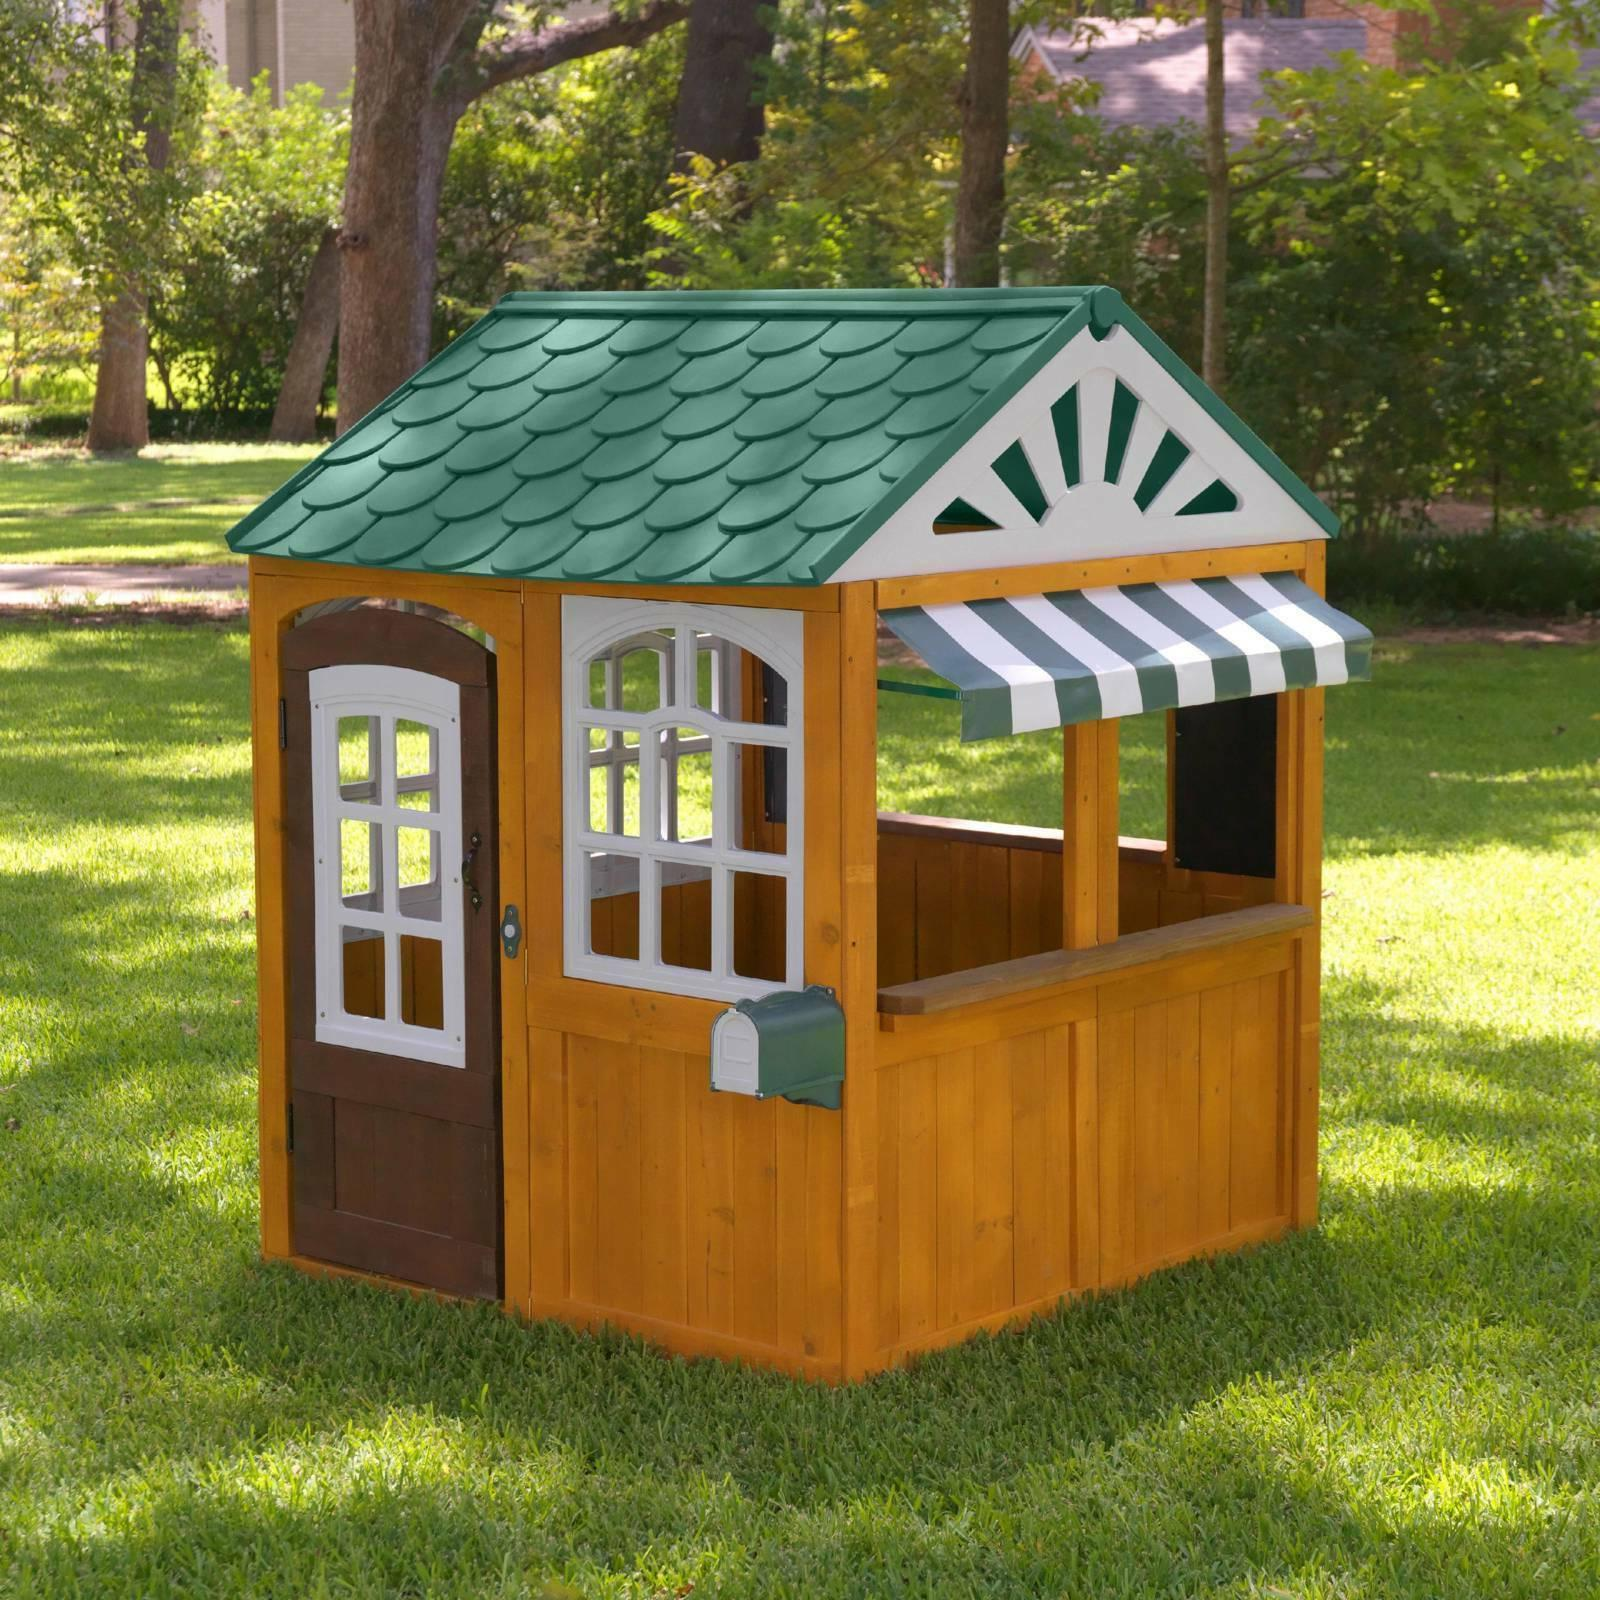 Easy Playhouse Kids Café-style Canopy House To